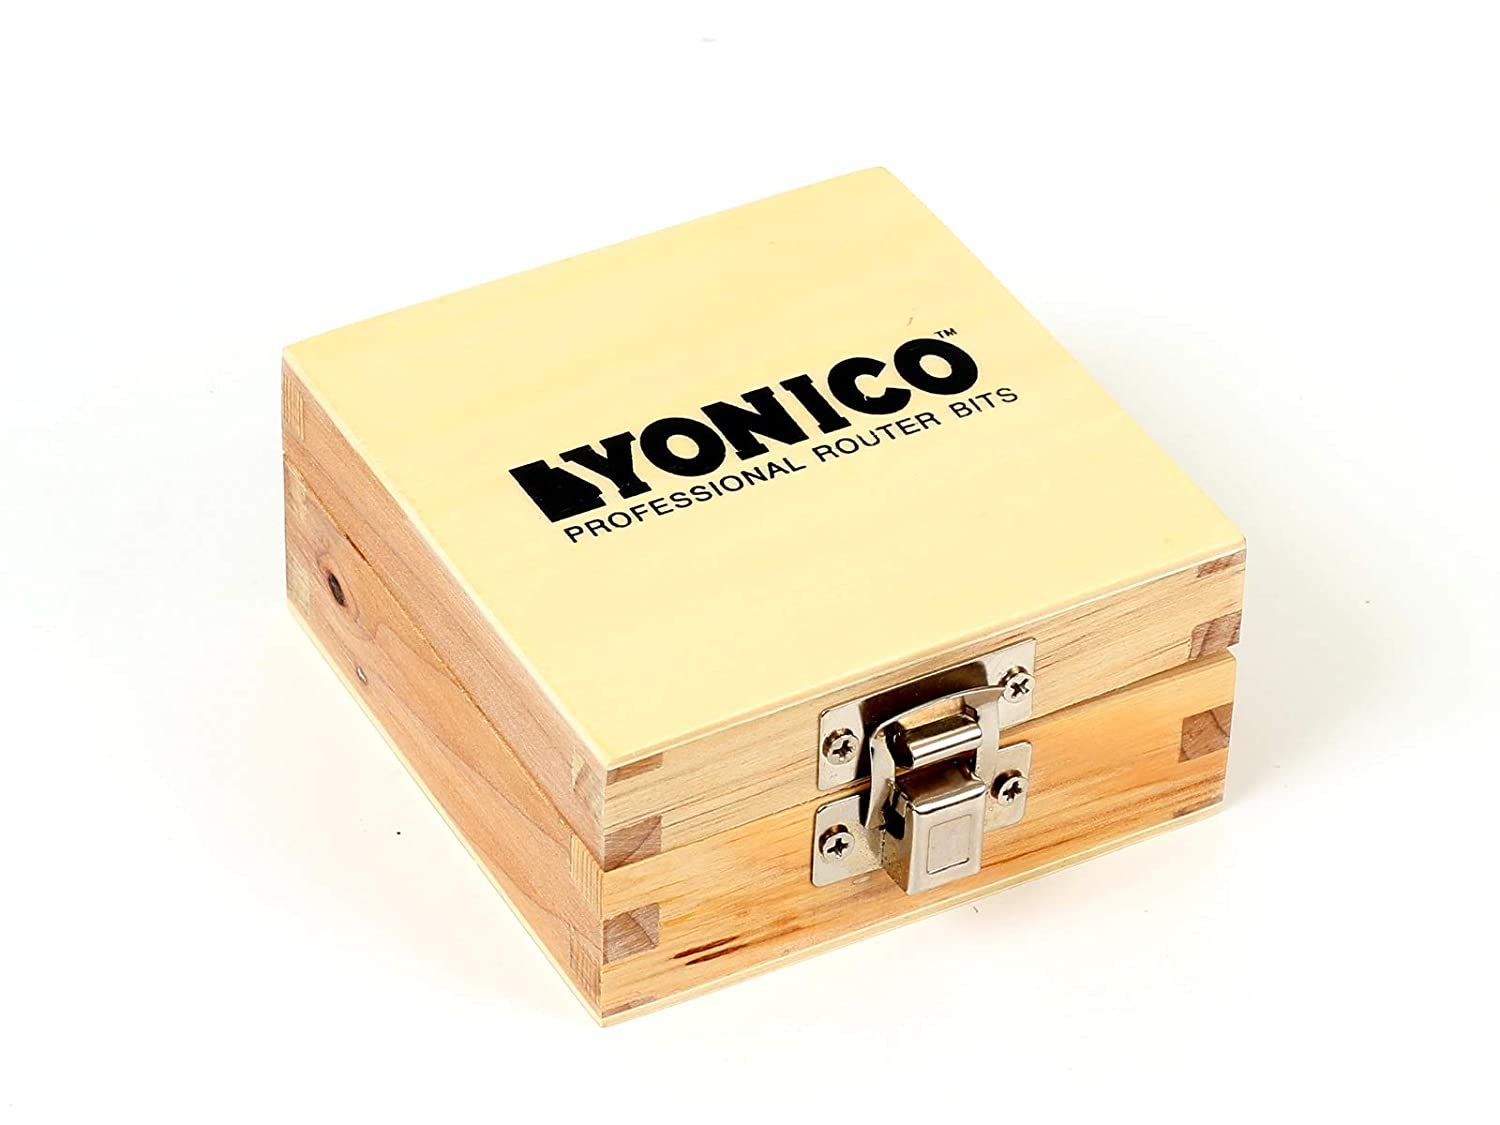 Yonico 15228q Yonico 15228q Tongue and Groove Router Bit Set 1//4 x 1//4 1//4 Shank,